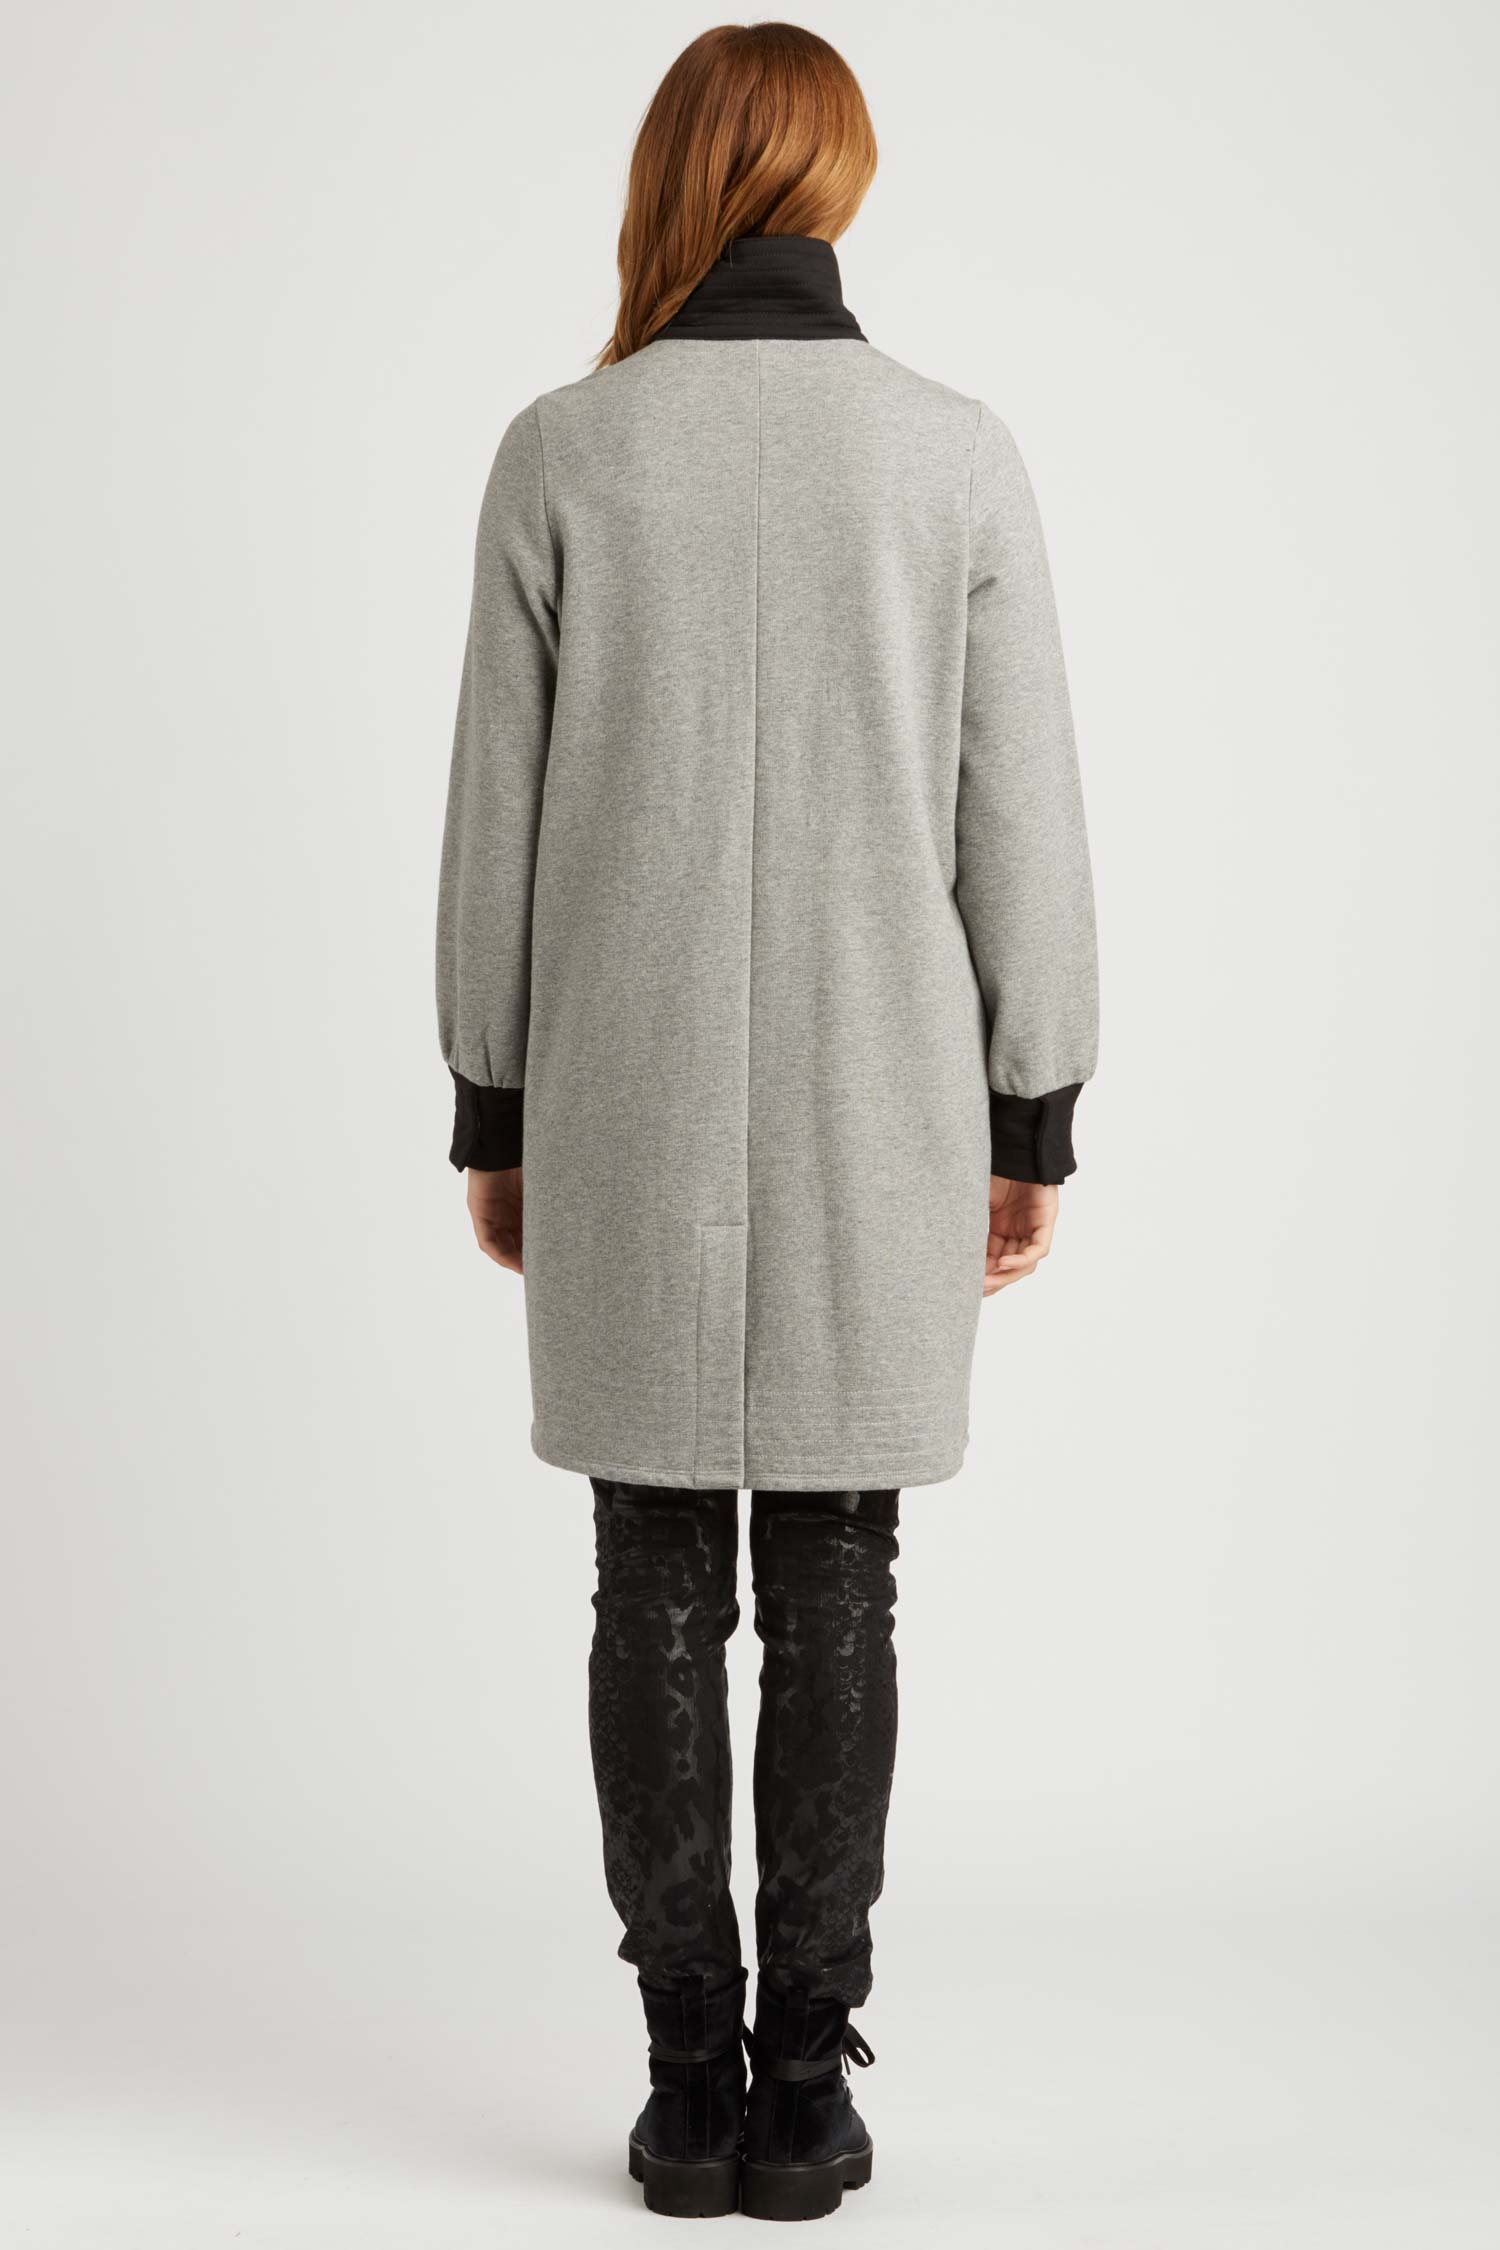 Womens Fleece Bomber Coat | Gray | Organic Cotton Outerwear